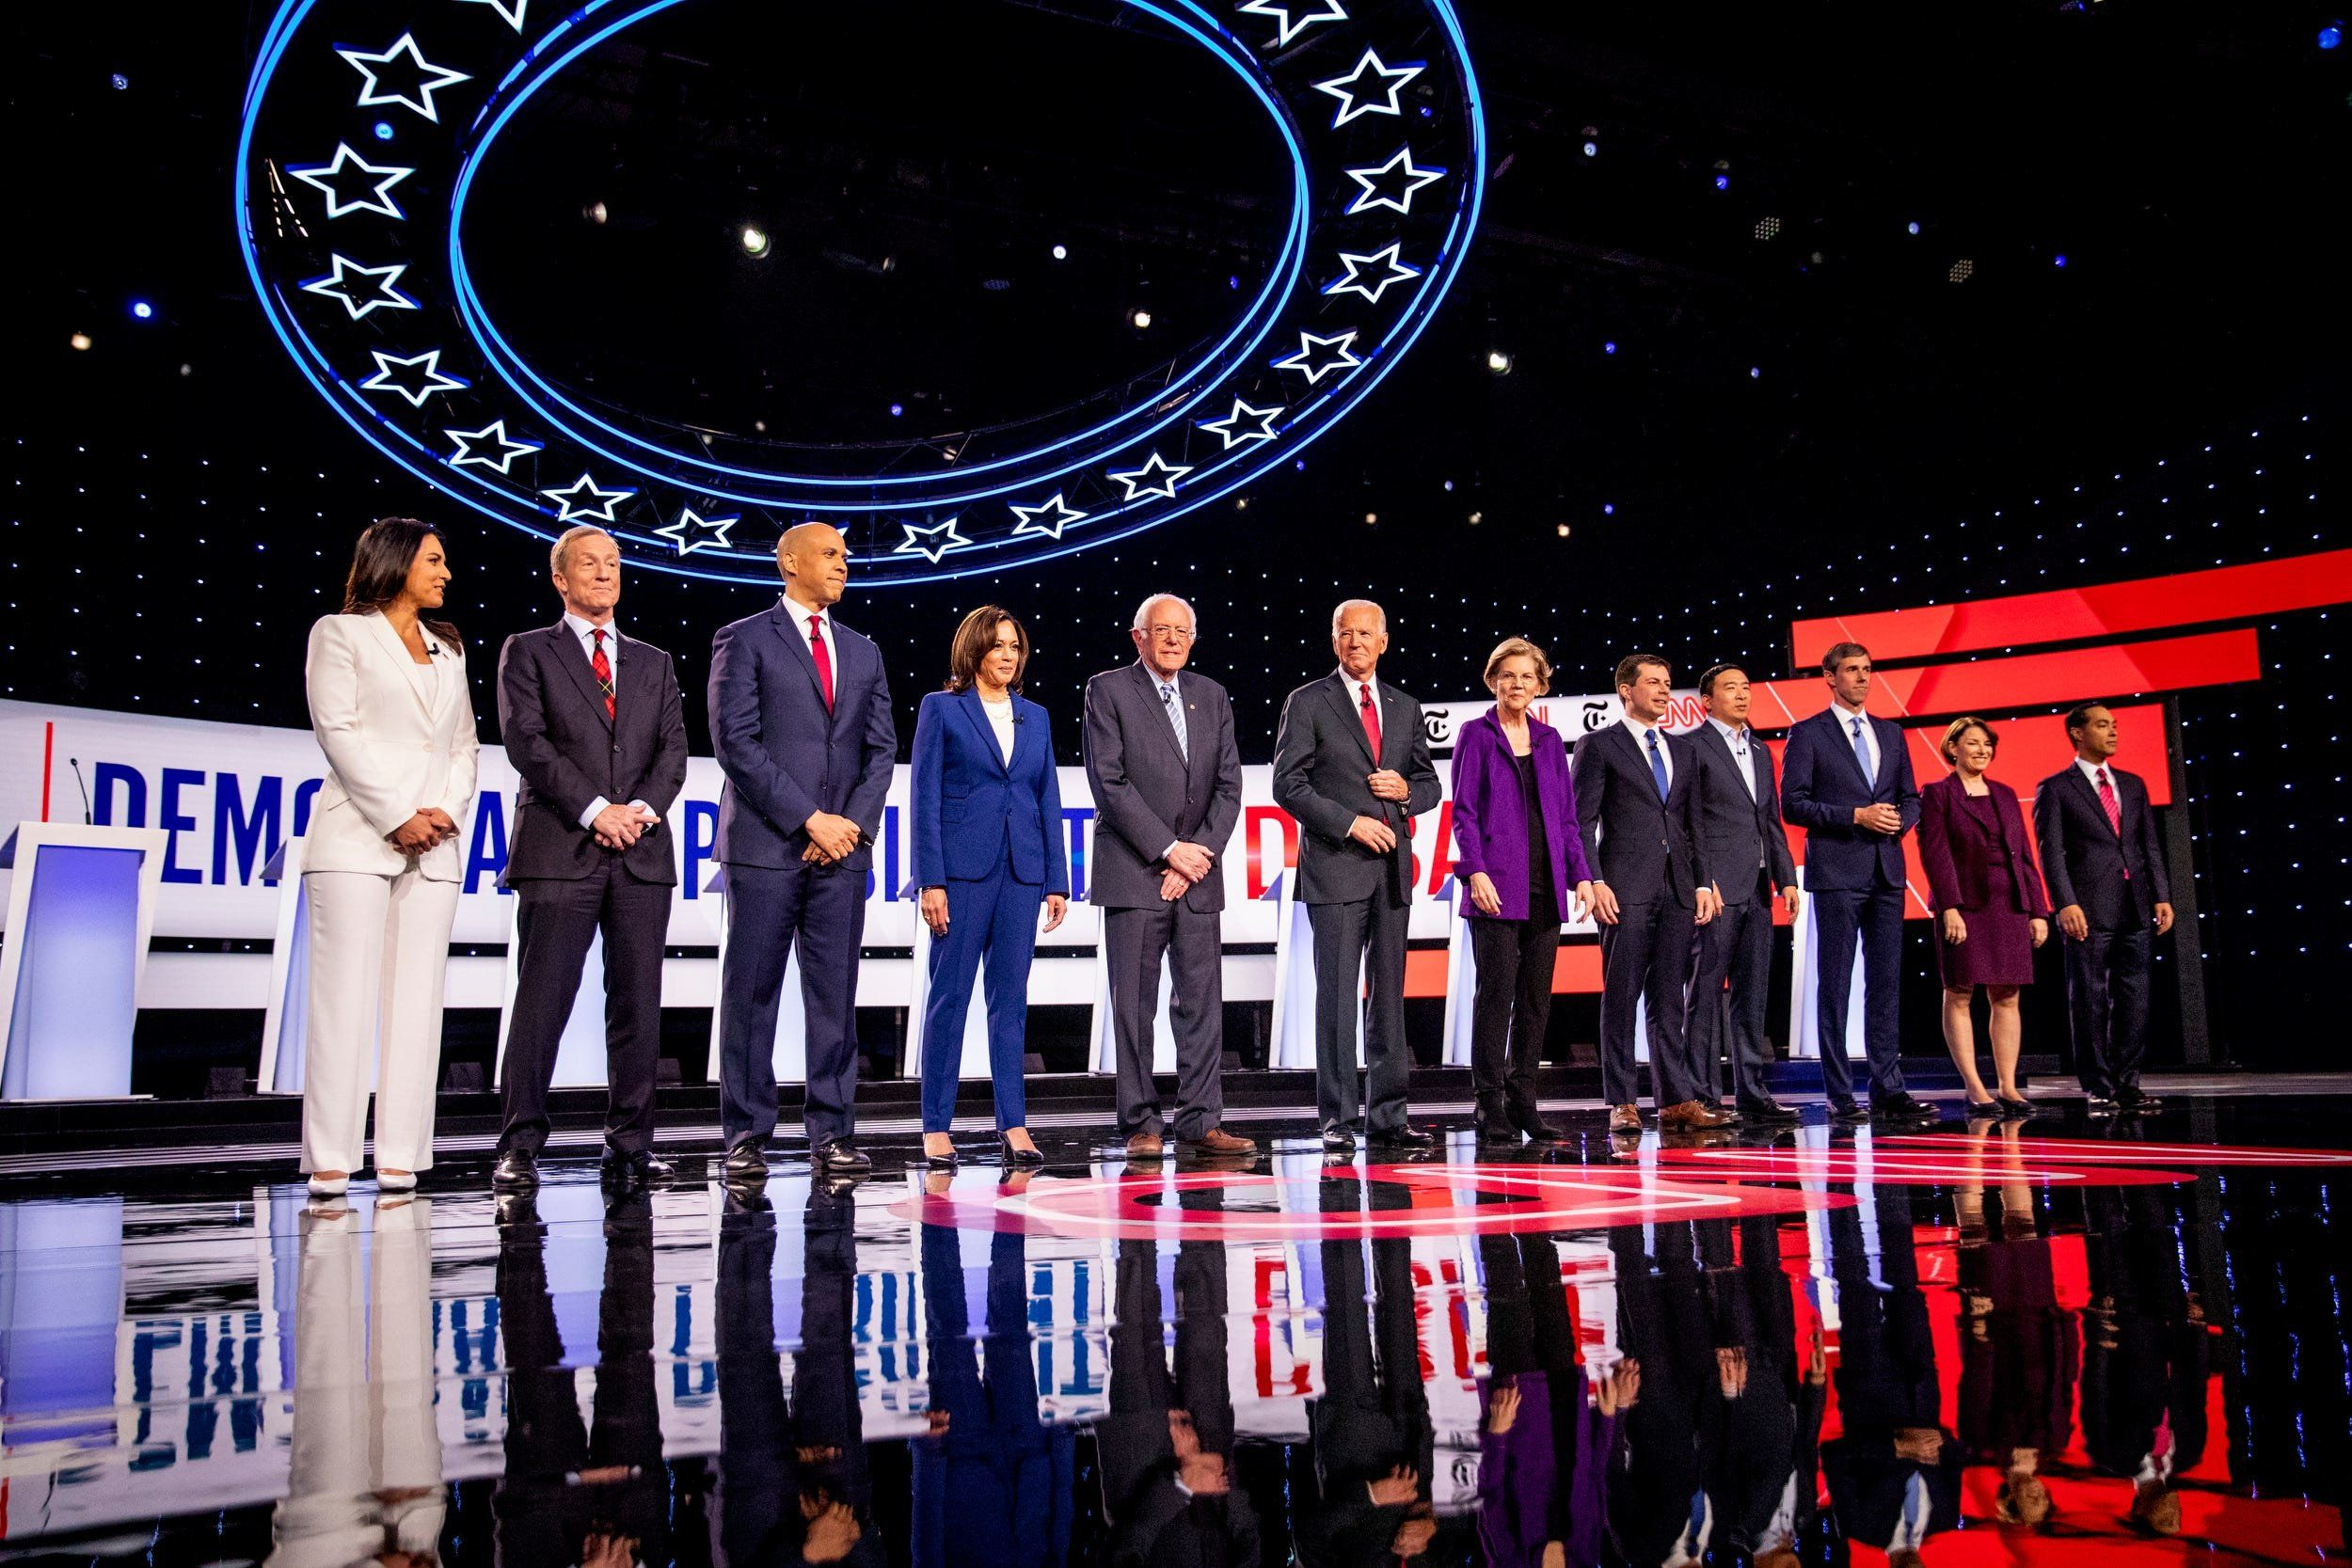 The Democratic debate: finally, foreign policy!